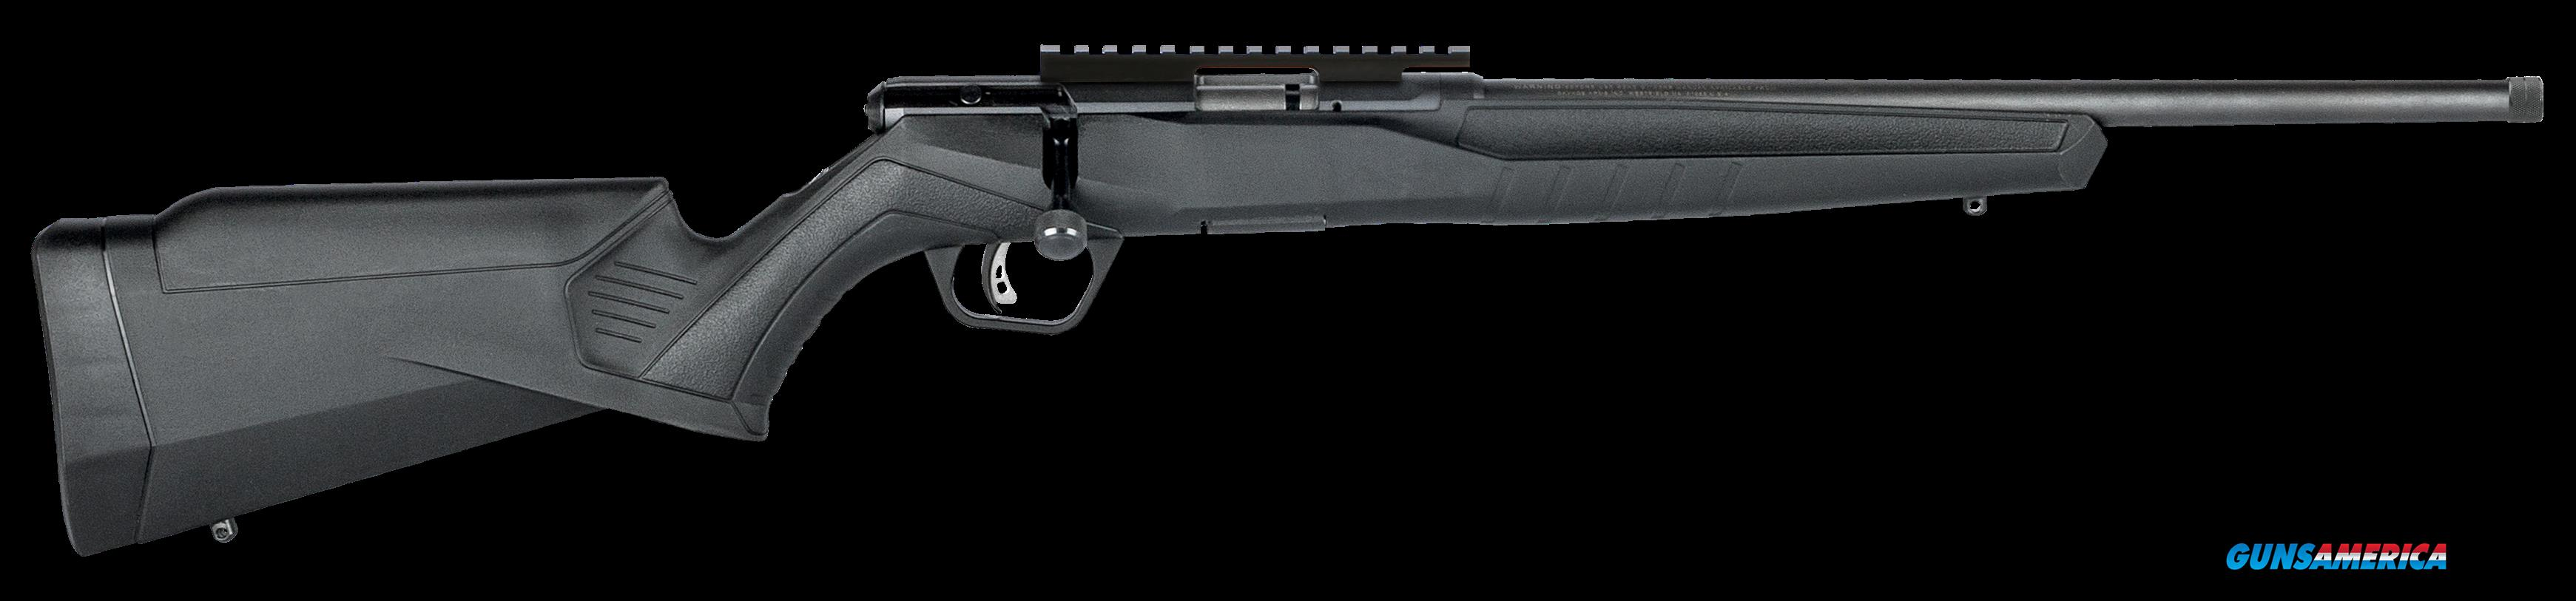 "Savage 70803 B17 FVSR Bolt 17 Hornady Magnum Rimfire (HMR) 16.25"" 10+1 Synthetic Black Stk Black  Guns > Rifles > S Misc Rifles"